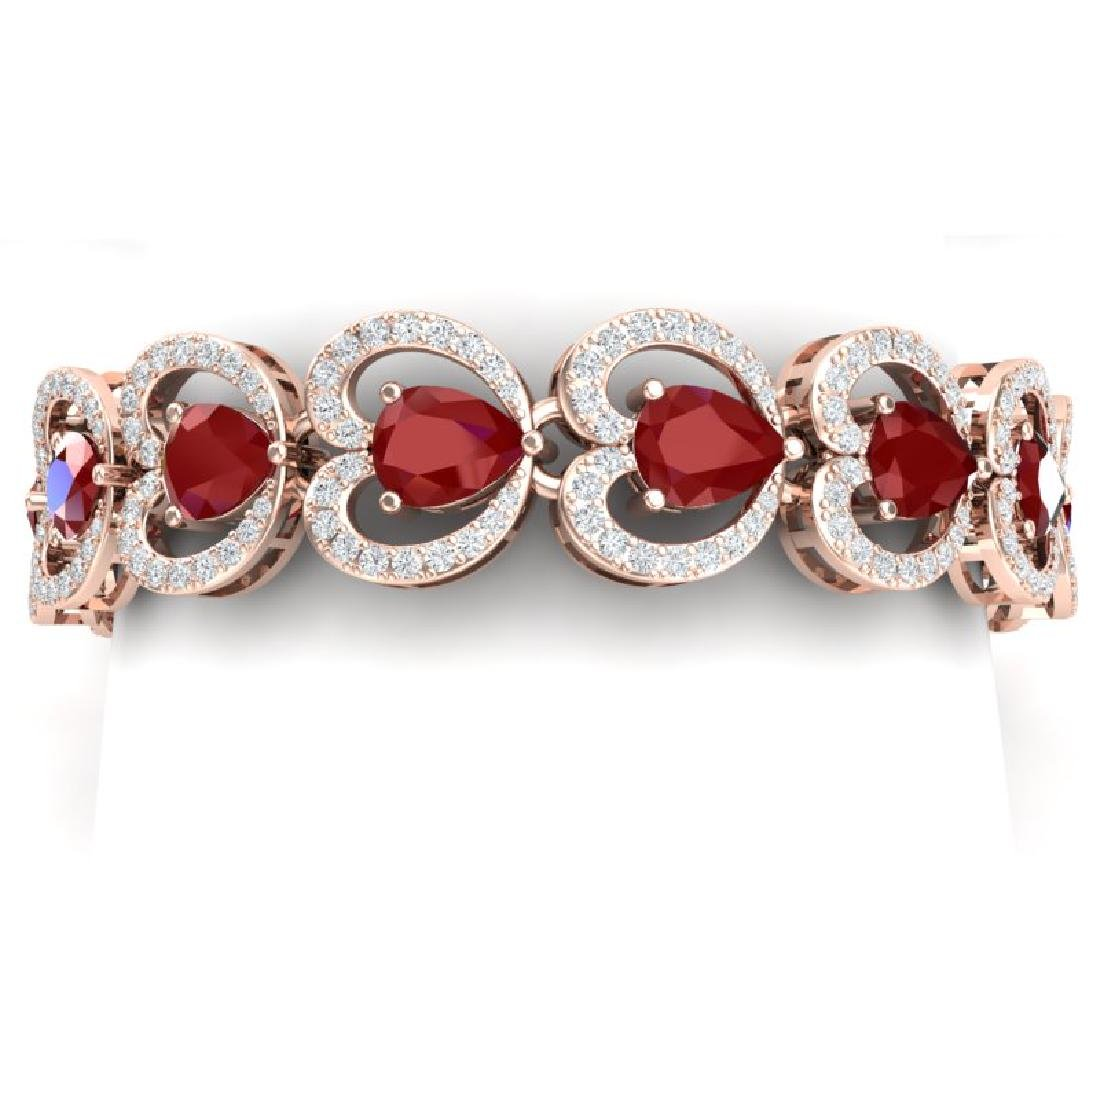 32.15 CTW Royalty Ruby & VS Diamond Bracelet 18K Rose